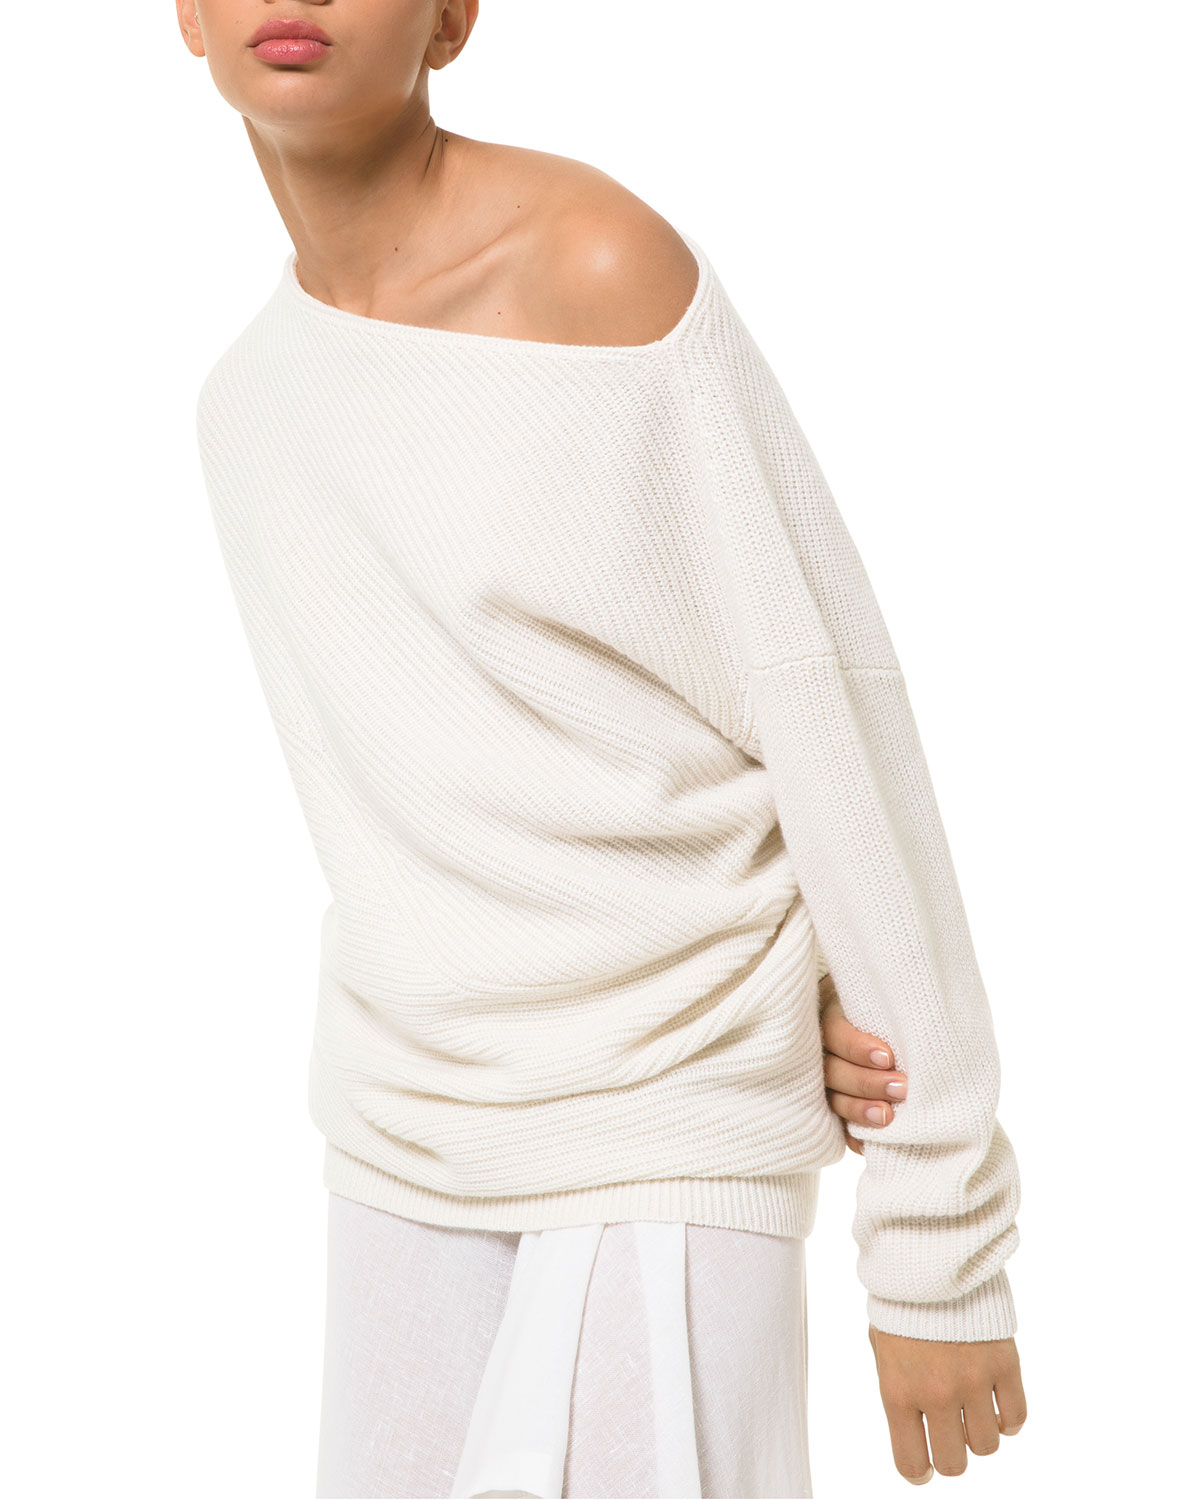 Michael Kors OFF-SHOULDER CASHMERE-BLEND SHAKER SWEATER